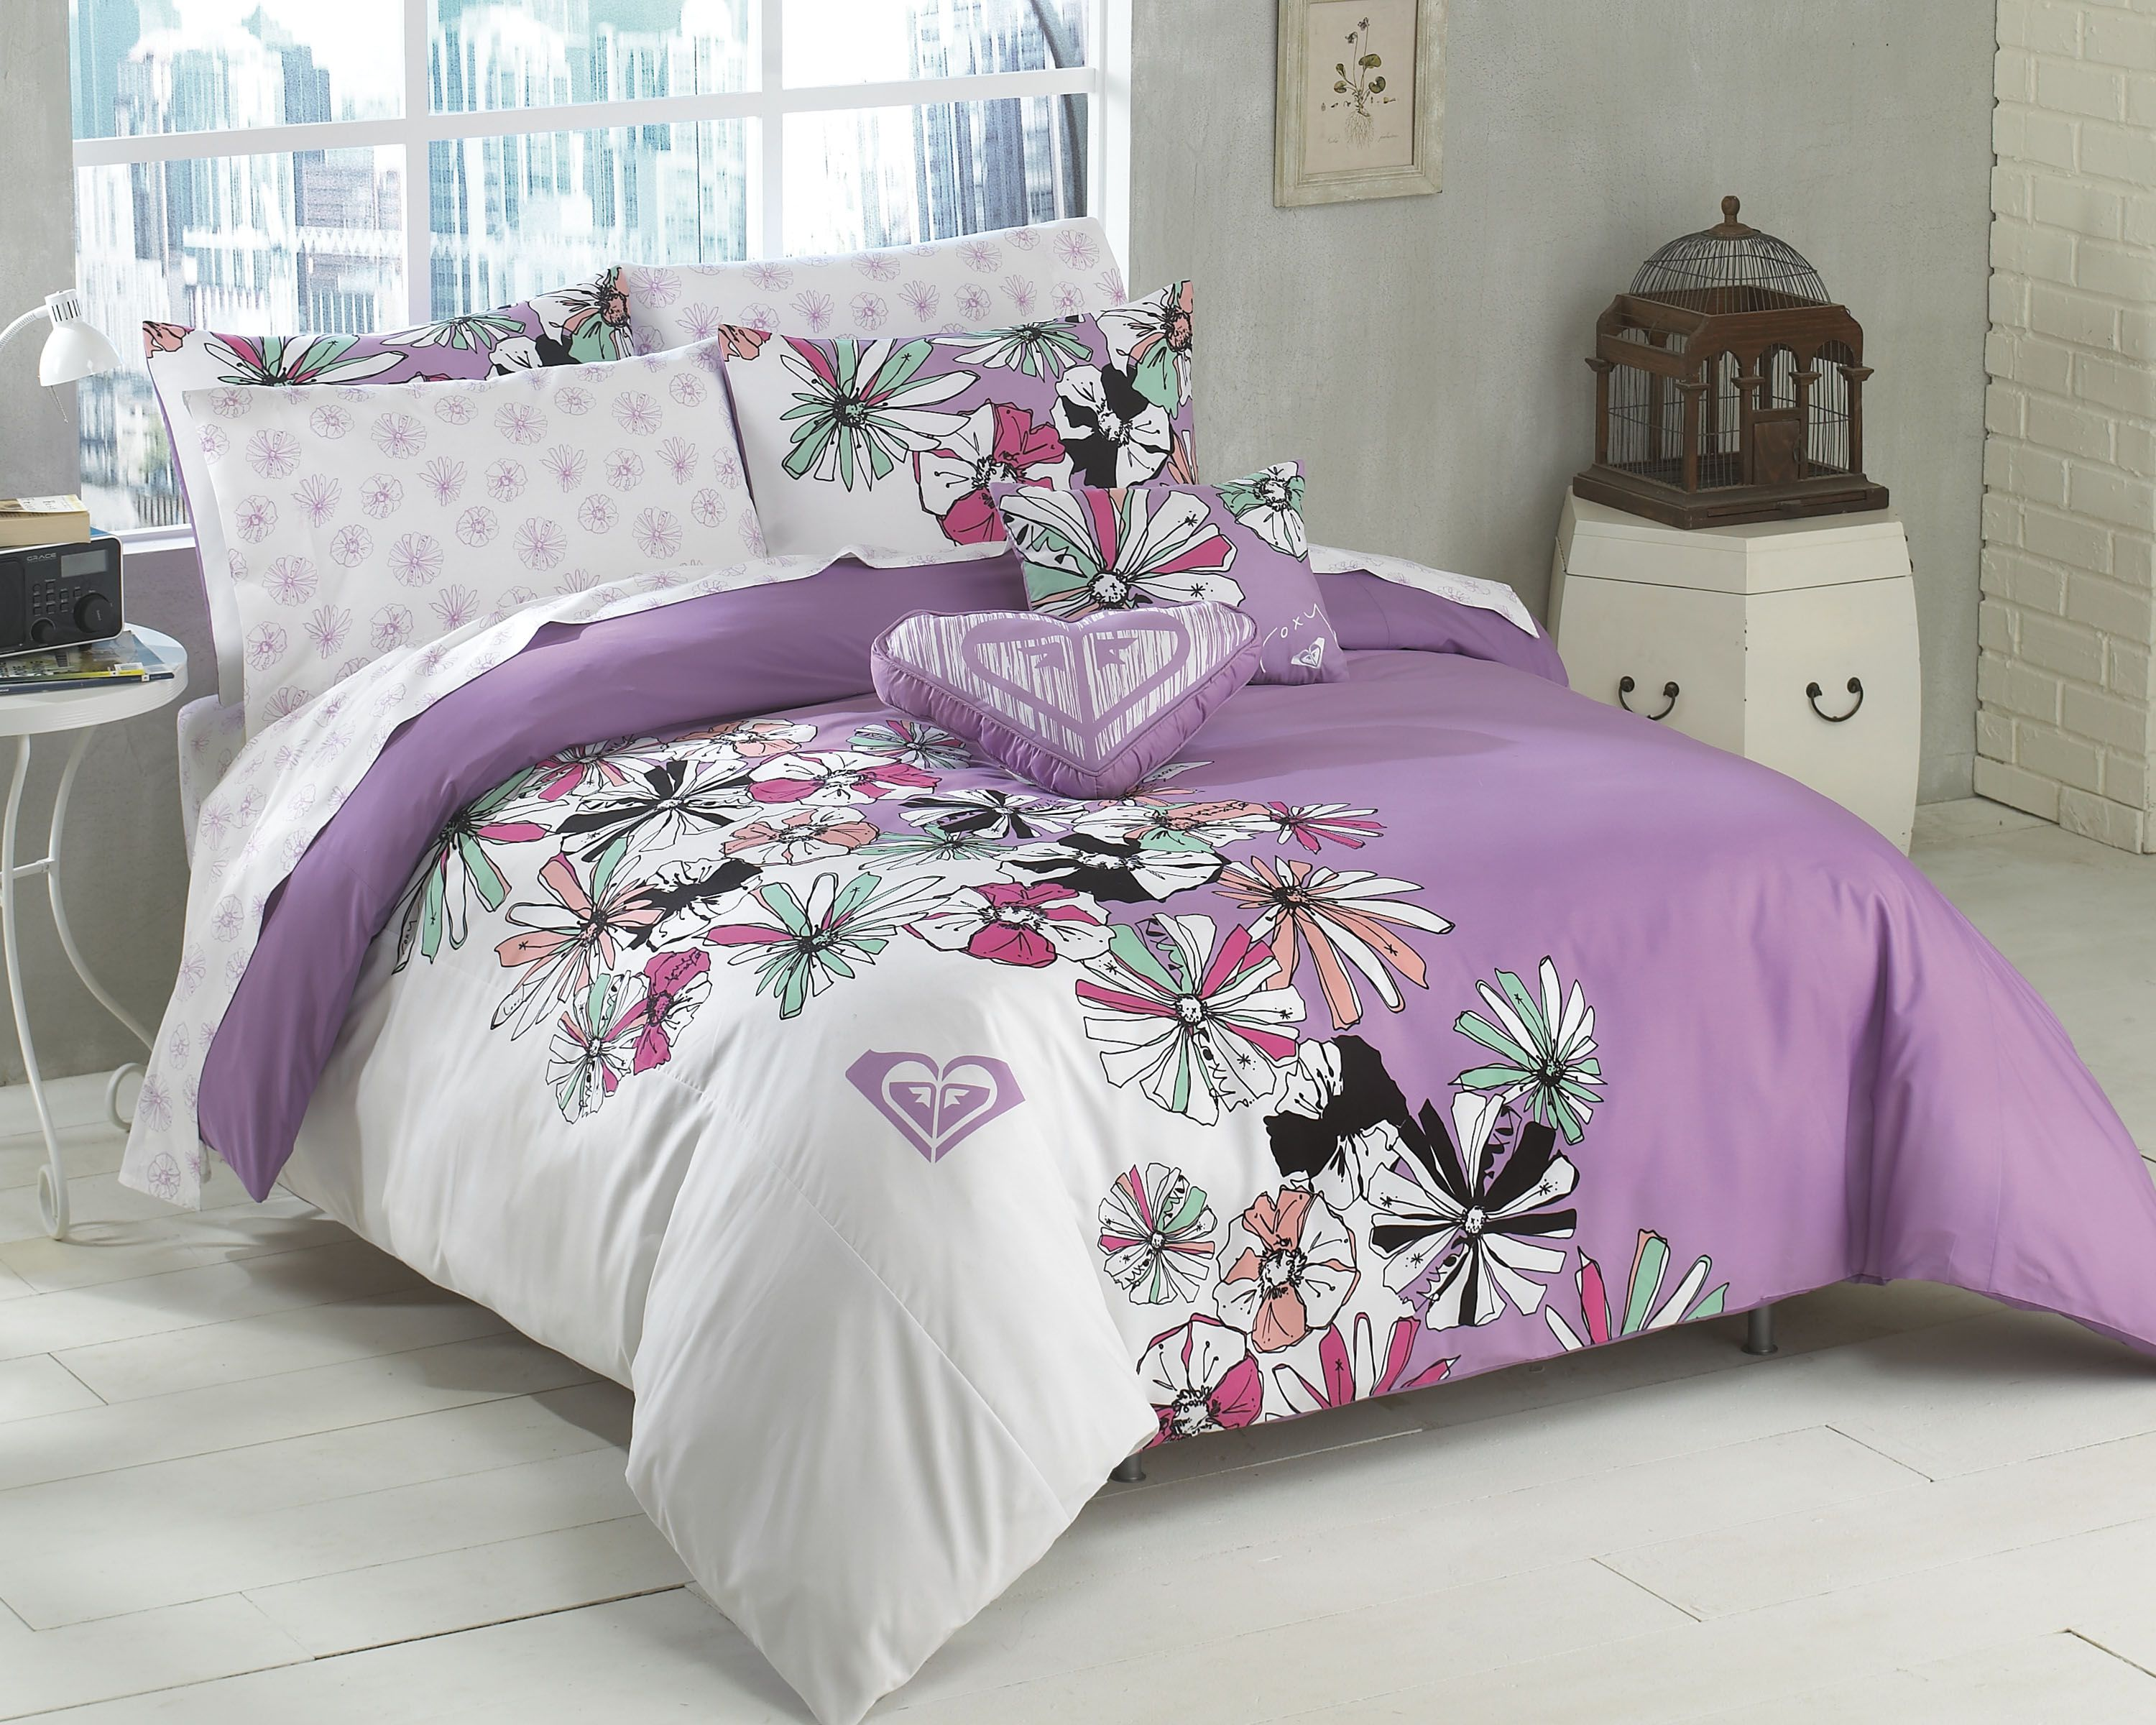 Bed Bath and Beyond Bedding | Favorite q View Full Size